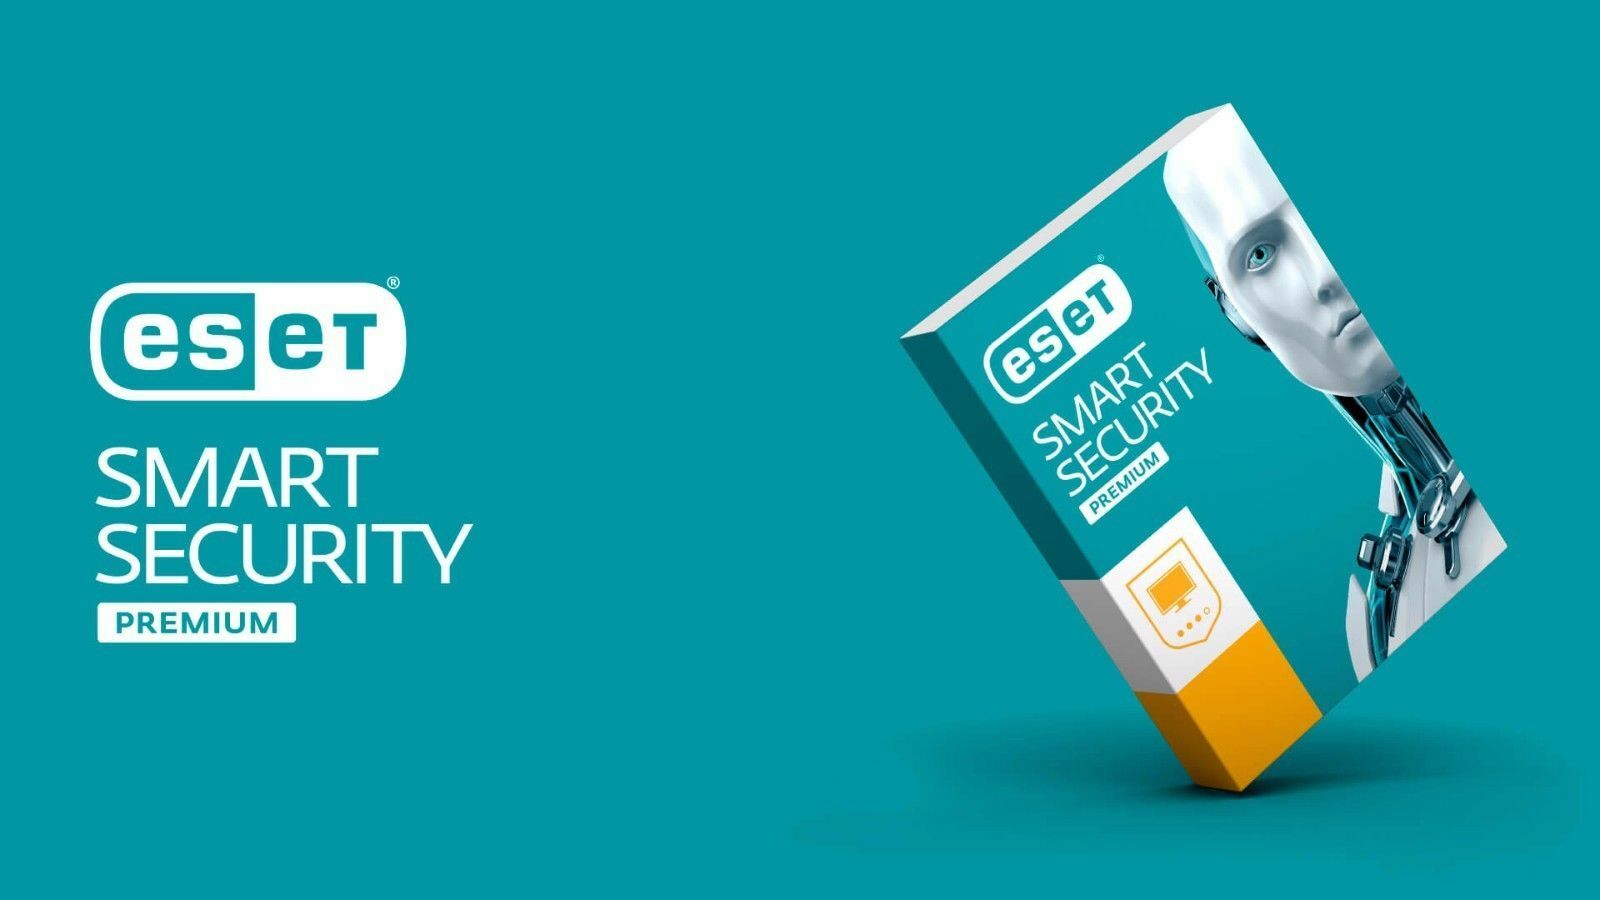 Eset Smart Security Premium >> ESET SMART SECURITY PREMIUM 2018 v11 OVER 2 YEARS LICENCE ***FAST DELIVERY*** - EUR 11,32 ...